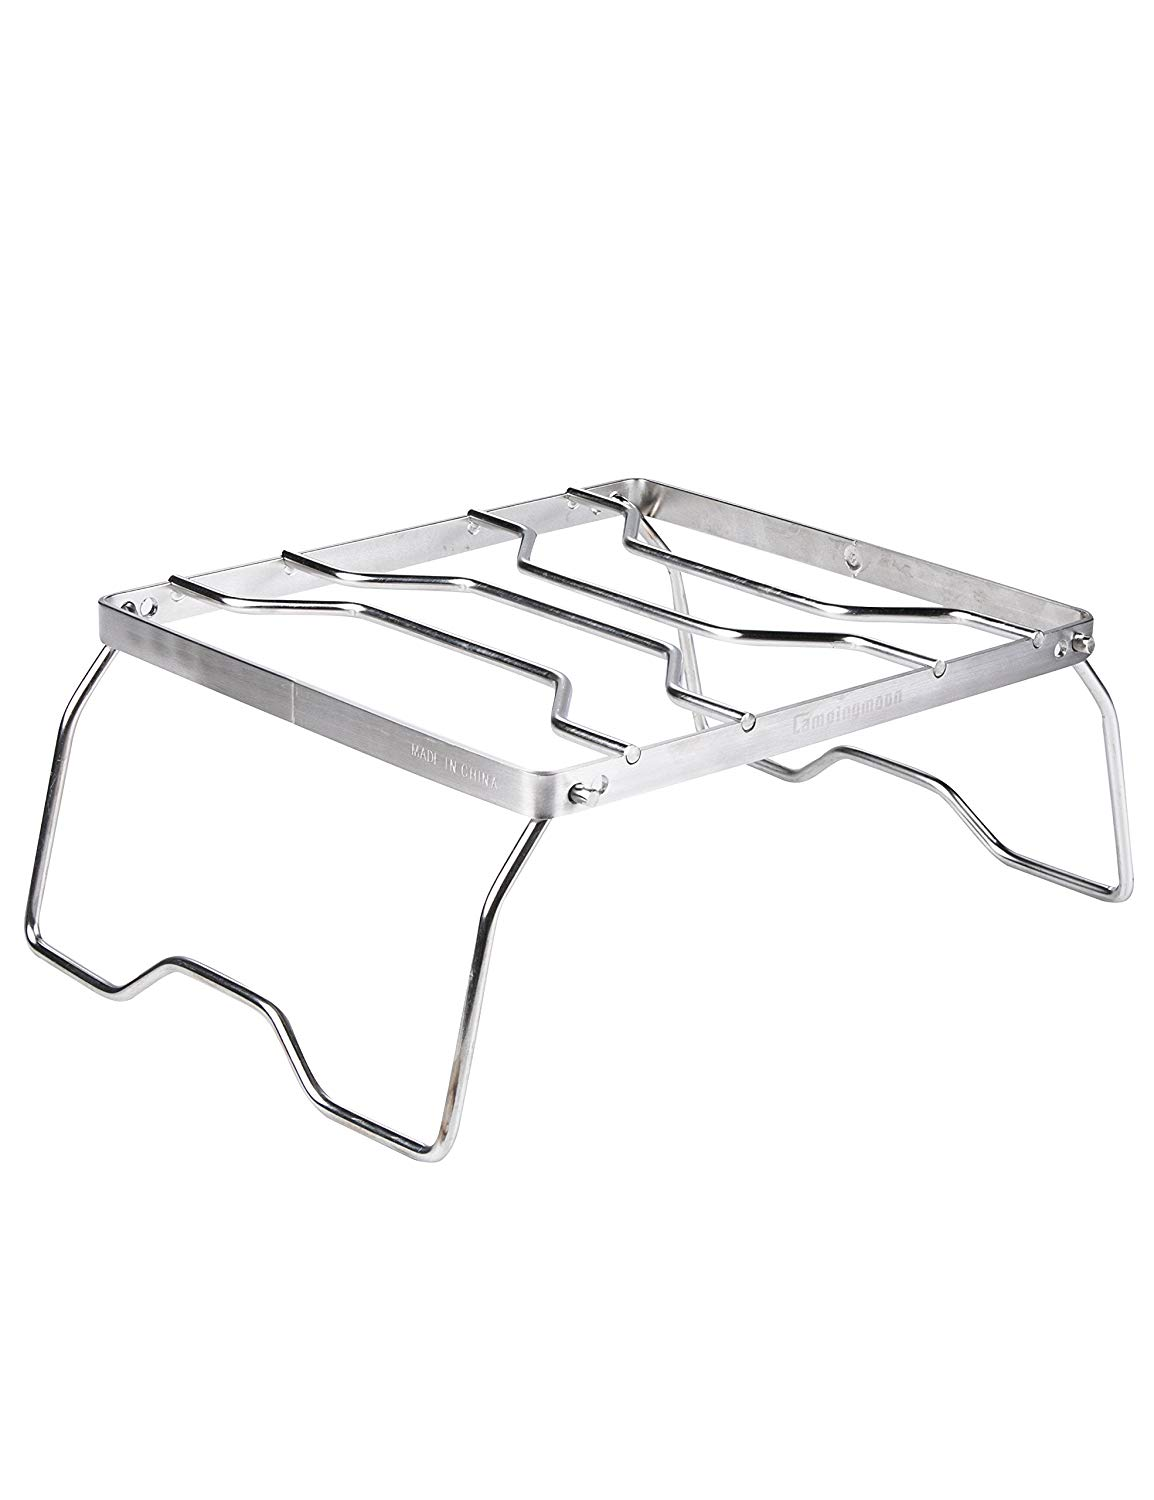 EL INDIO Portable Stainless Outdoor Gas Stove Stand for Camping Rack Stove Roast Pan Tray